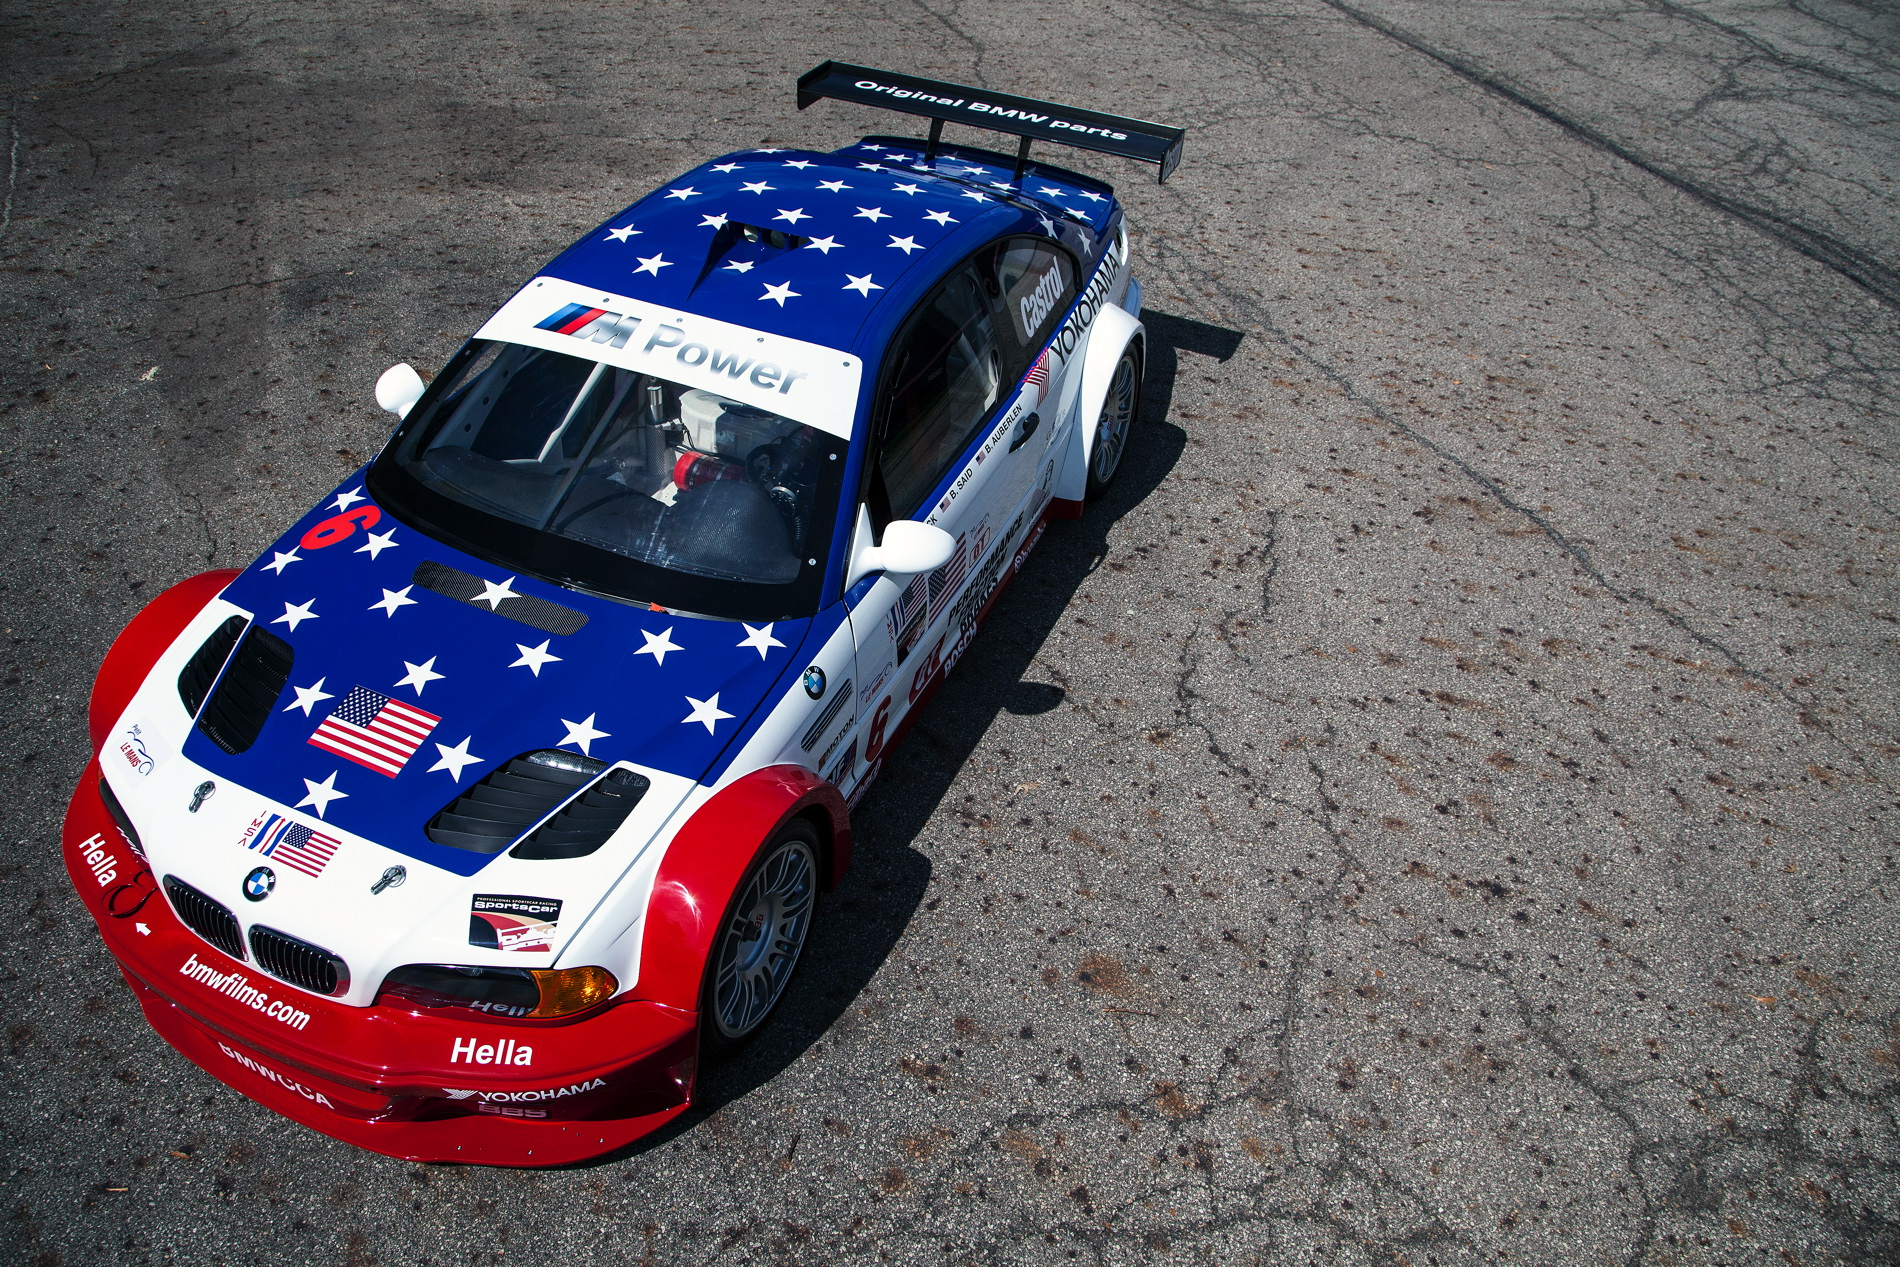 2001 BMW M3 GTR Race and Road Cars To Be Presented at ...